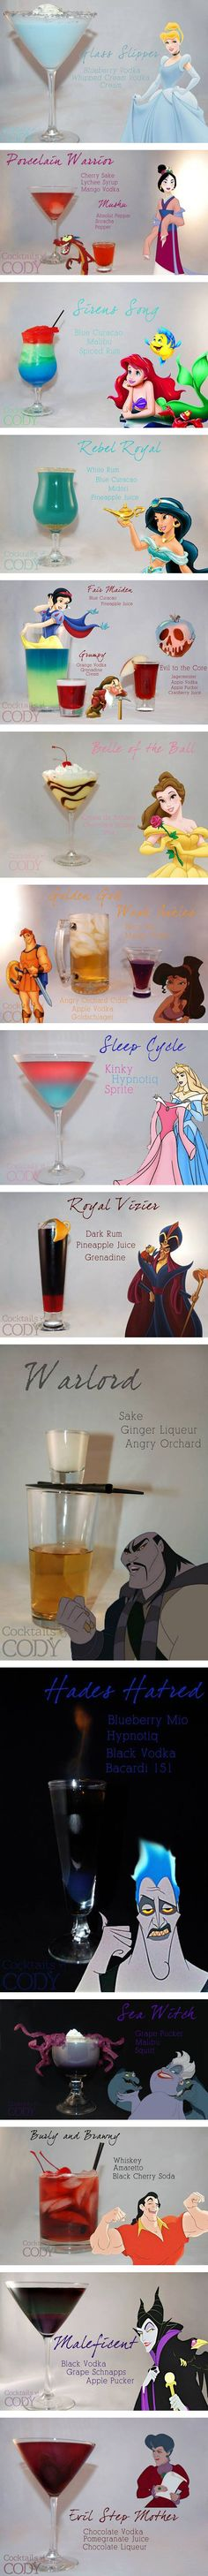 Disney princess themed cocktails. YUMMY